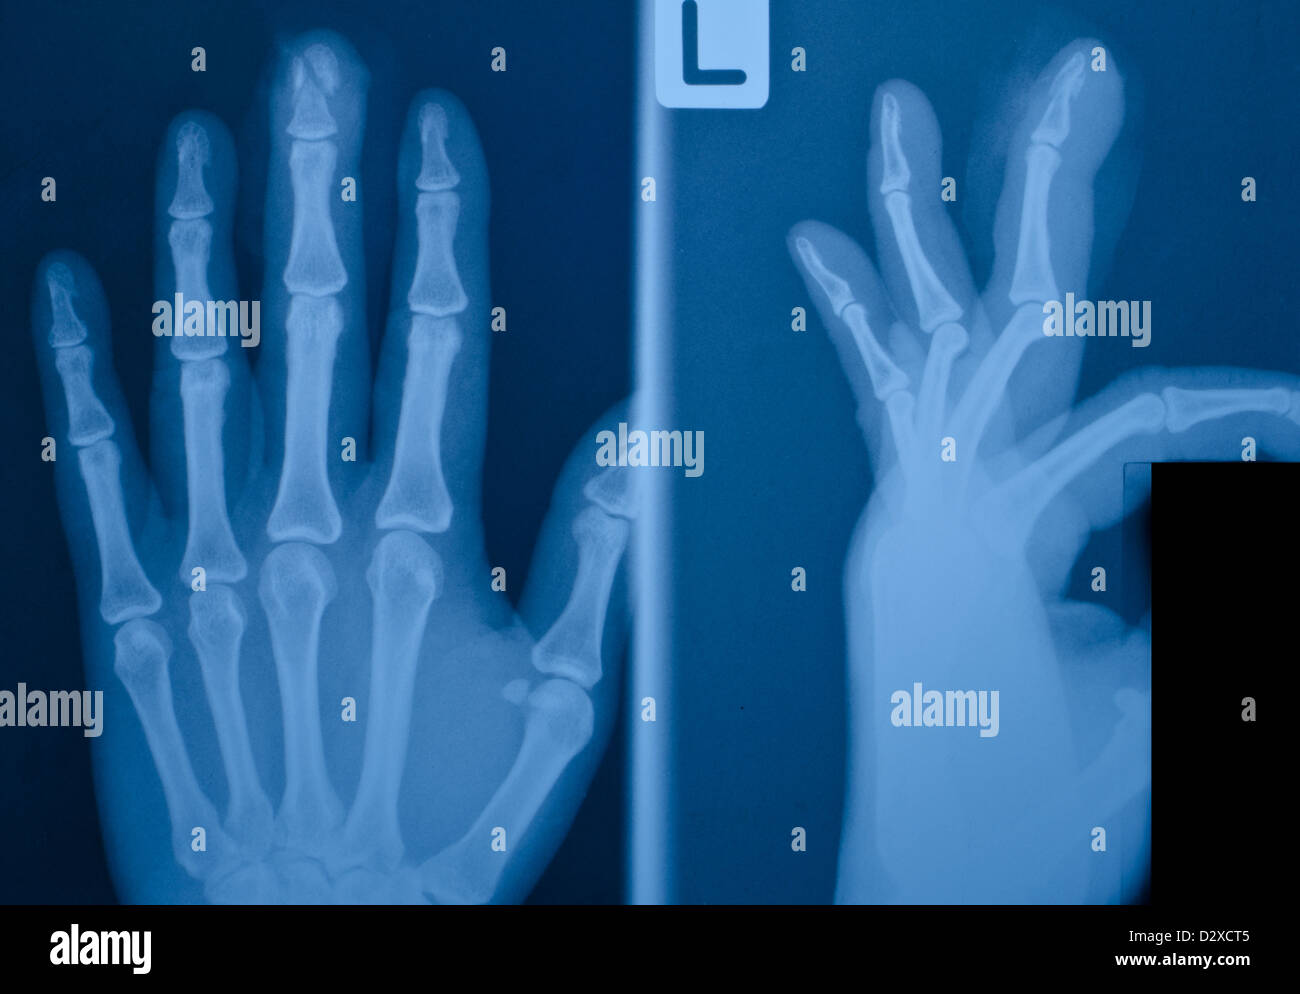 Finger Fracture Stock Photos & Finger Fracture Stock Images - Alamy